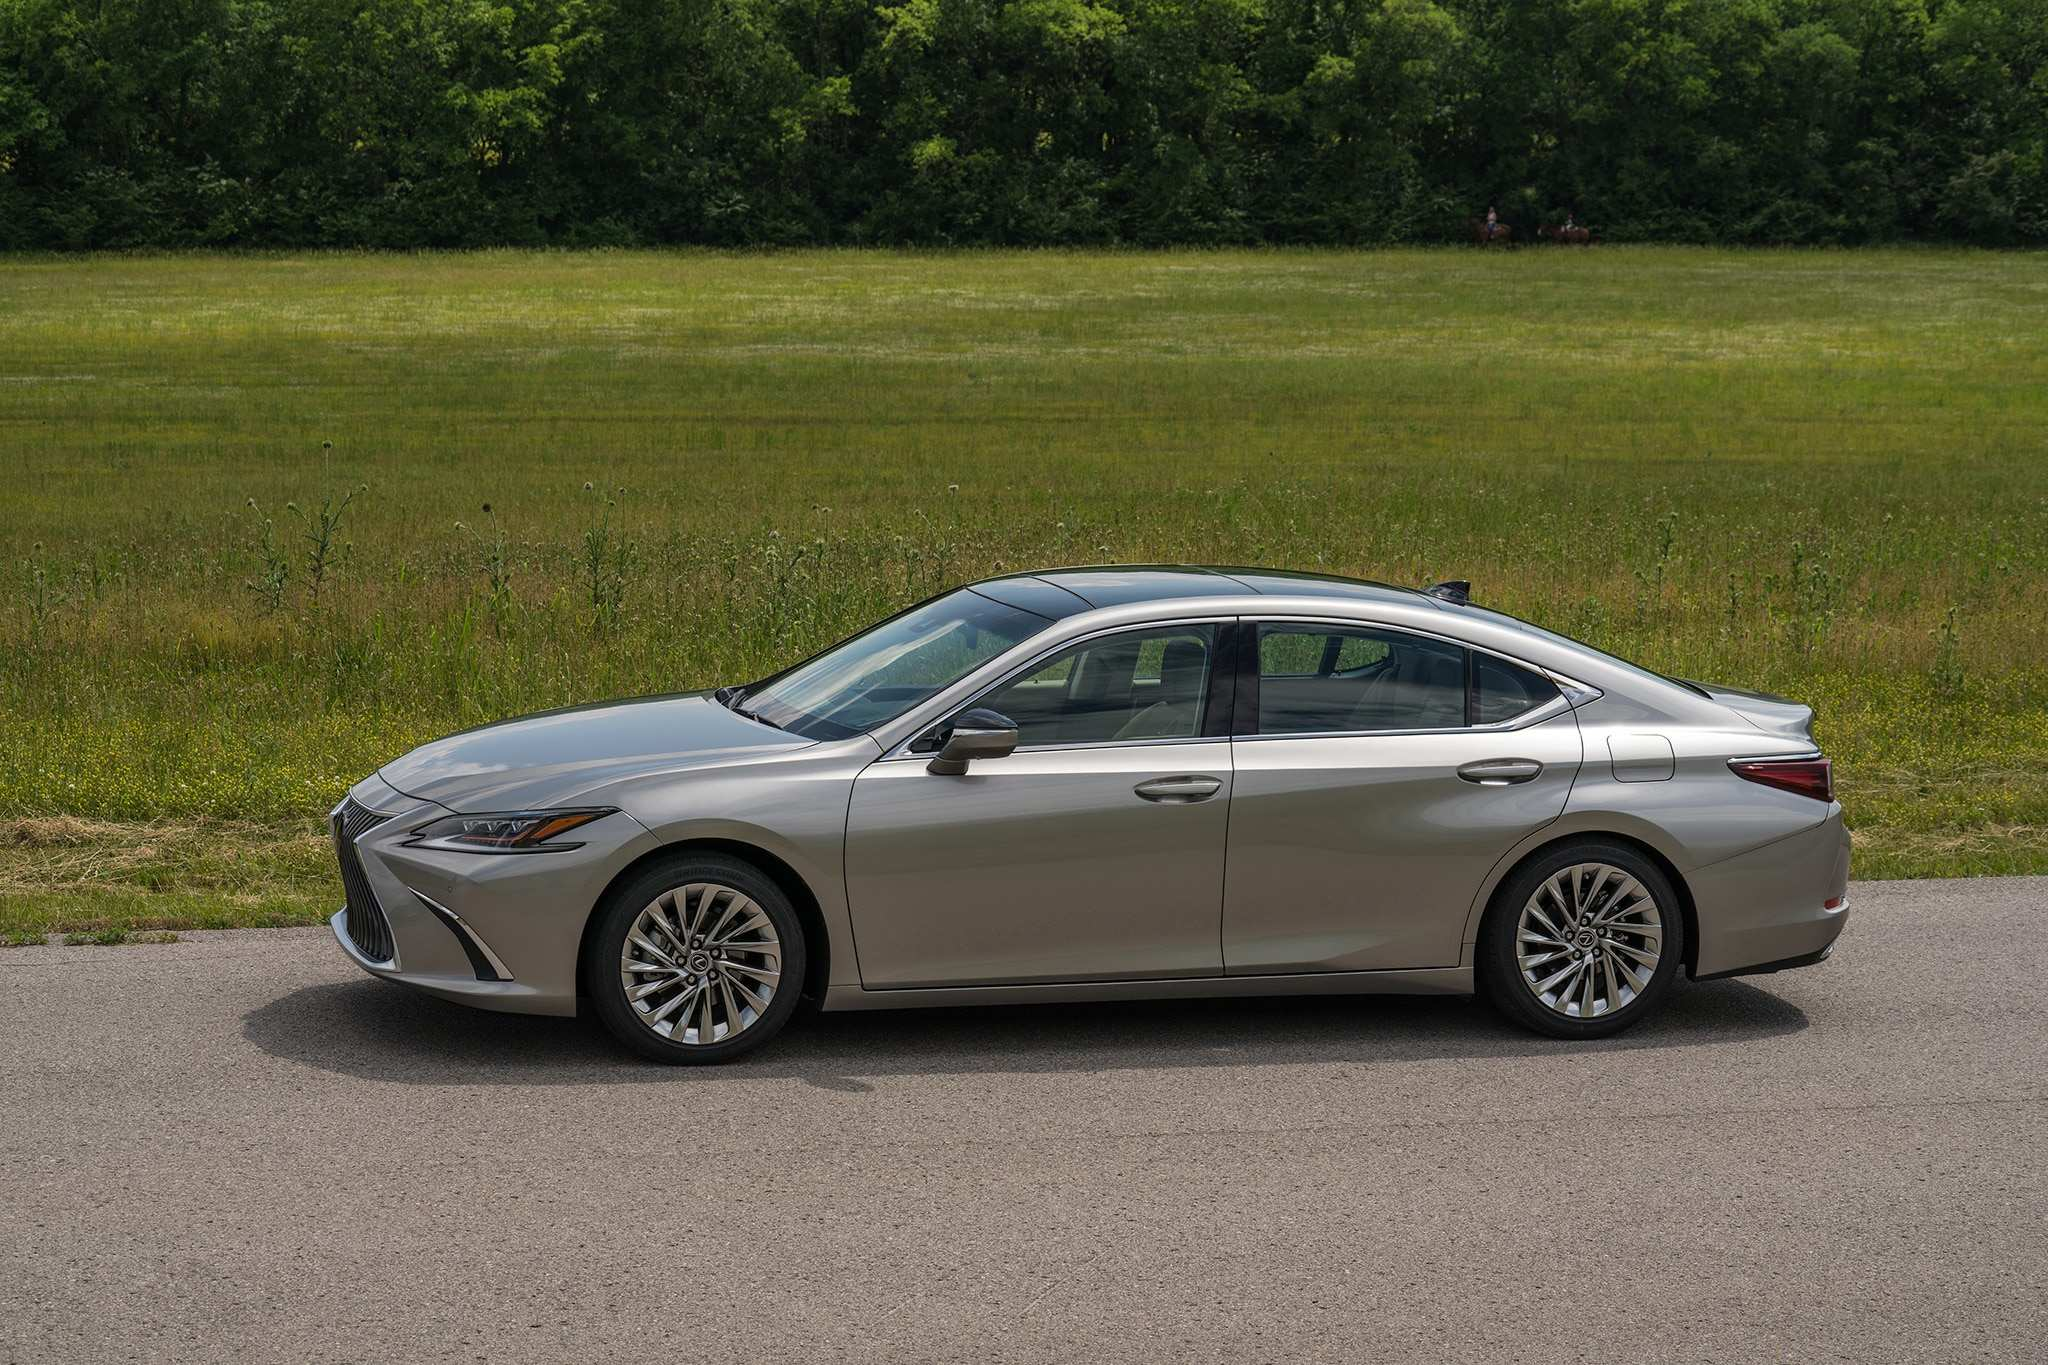 55 New Is 350 Lexus 2019 Style with Is 350 Lexus 2019